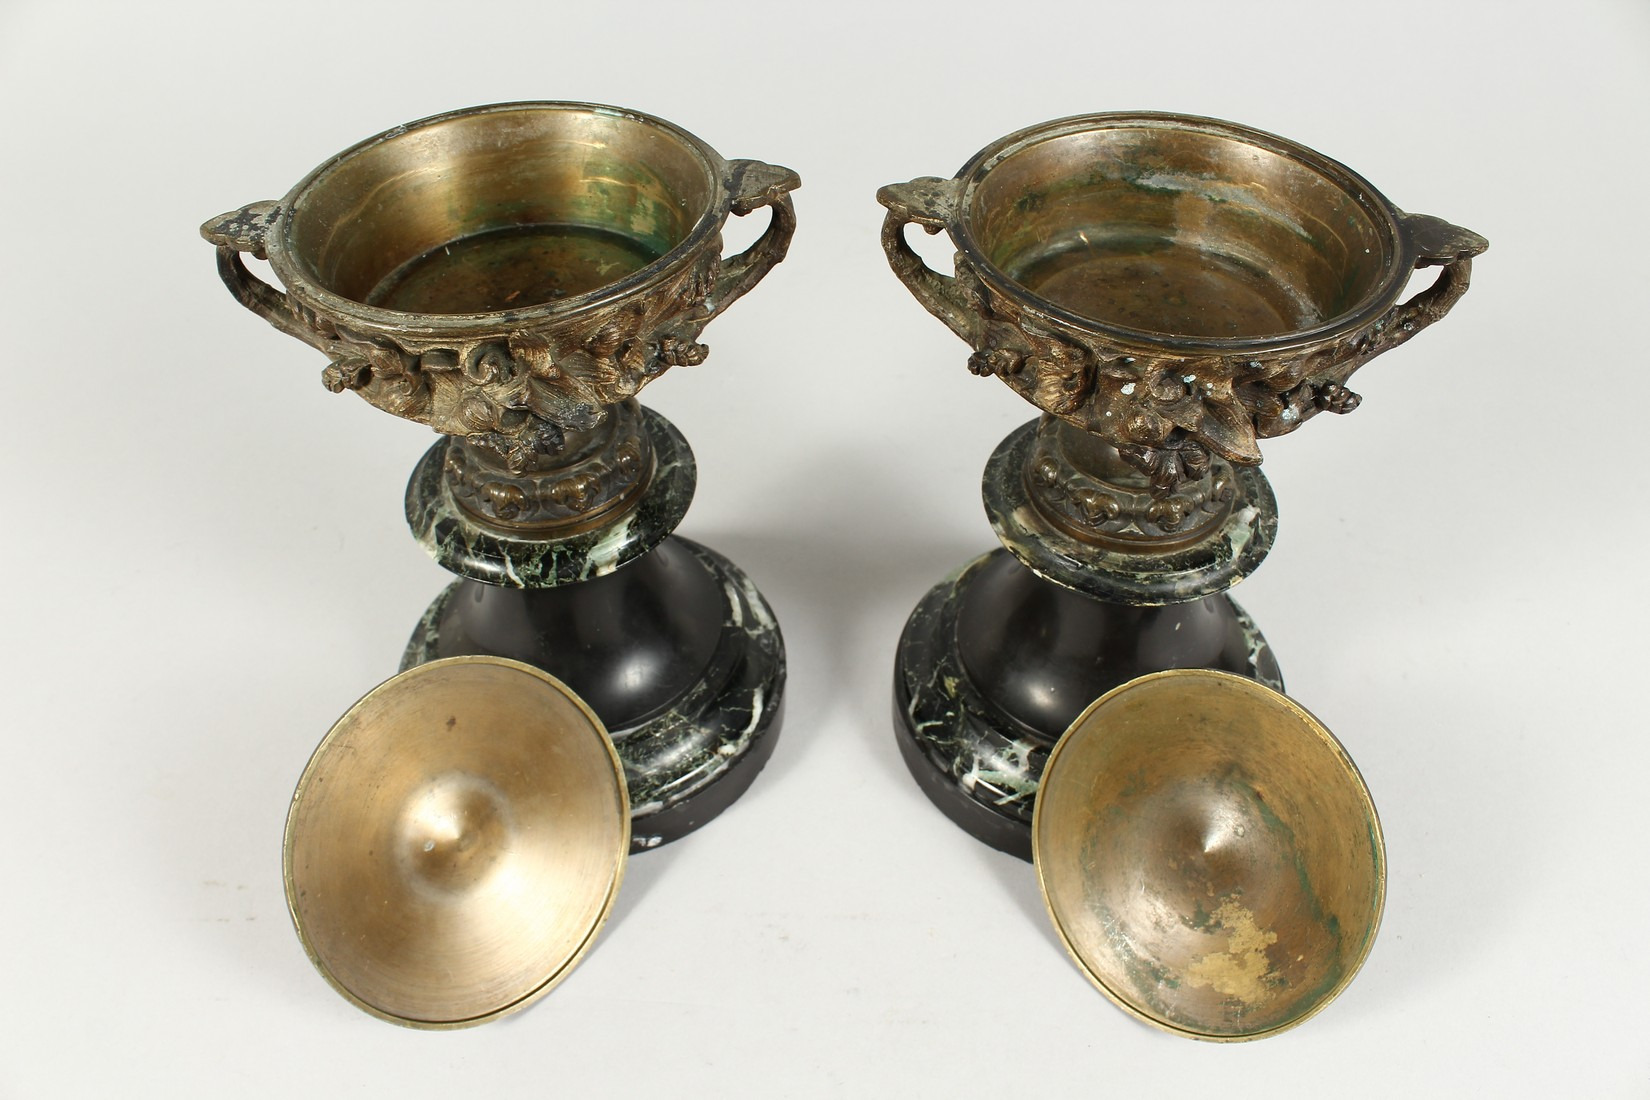 A PAIR OF BRONZE TWO HANDLED URNS AND COVERS on circular marble bases. 10ins high. - Image 4 of 6